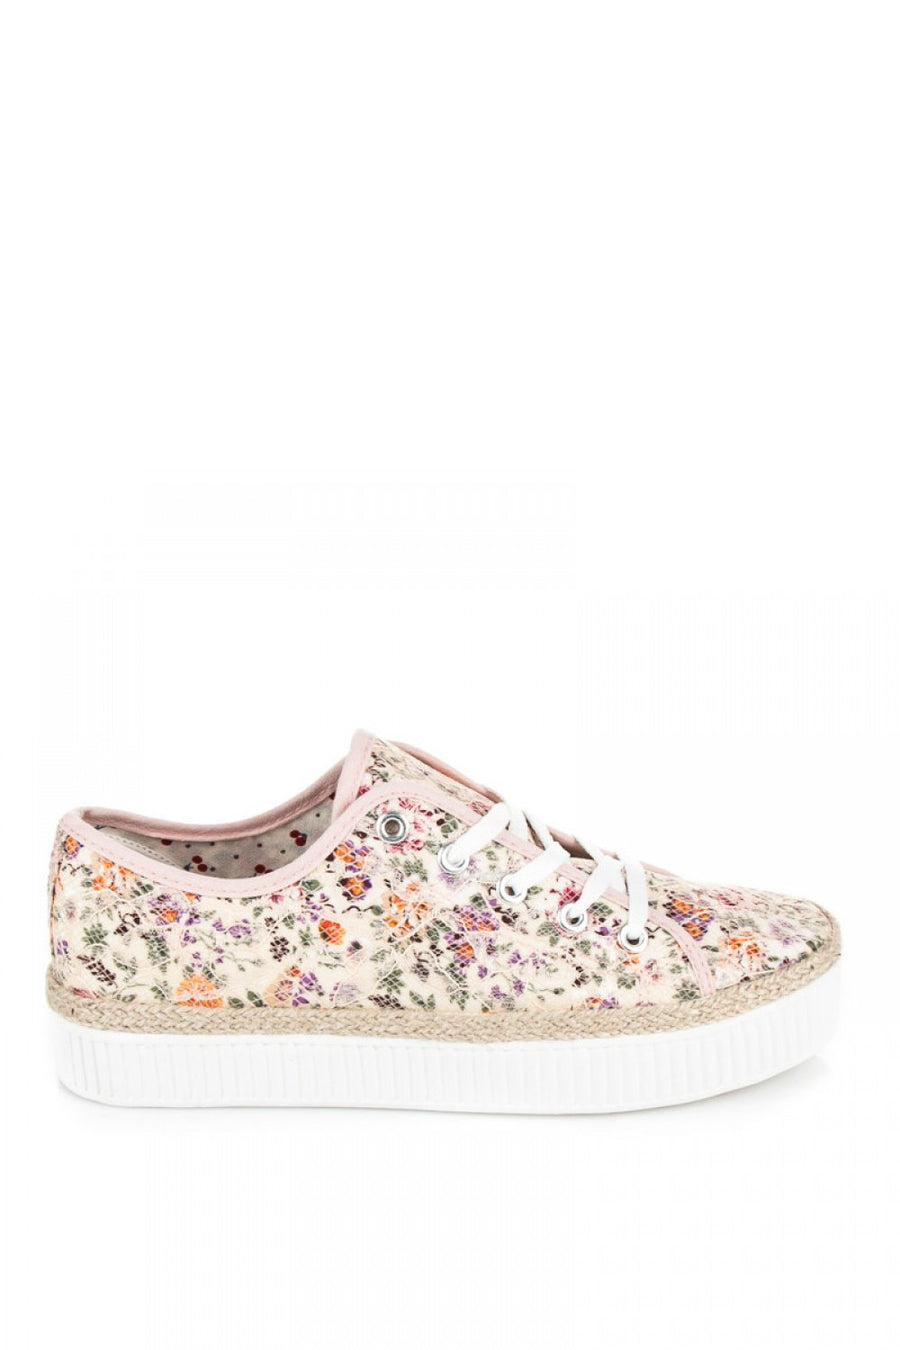 Espadrille 75665 Zoki-Women`s Athletic Shoes, Trainers, Sneakers-Zoki-Très Fancy